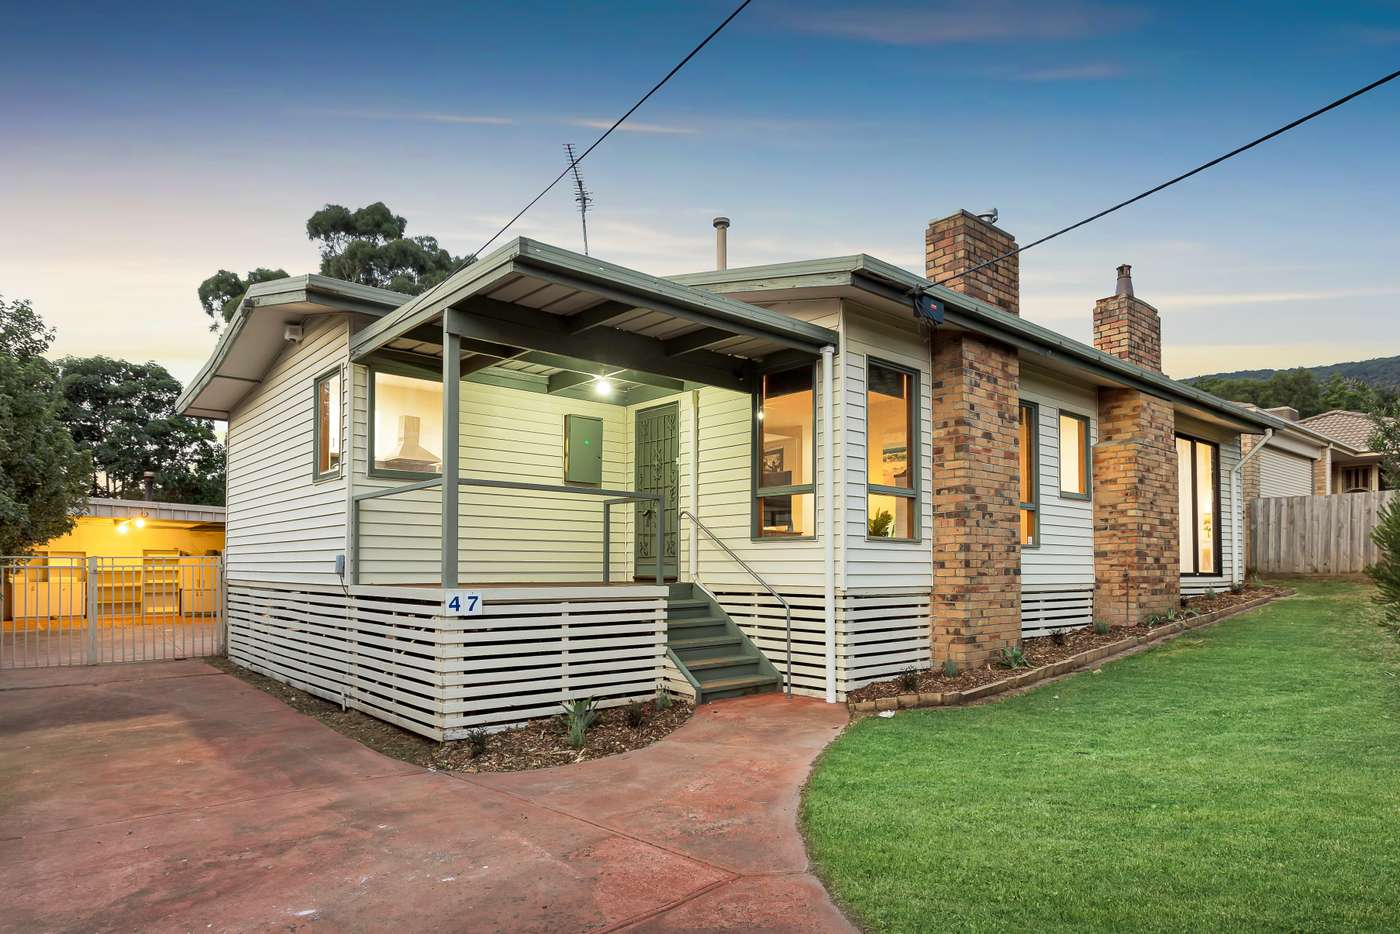 Main view of Homely house listing, 47 Doysal Avenue, Ferntree Gully VIC 3156